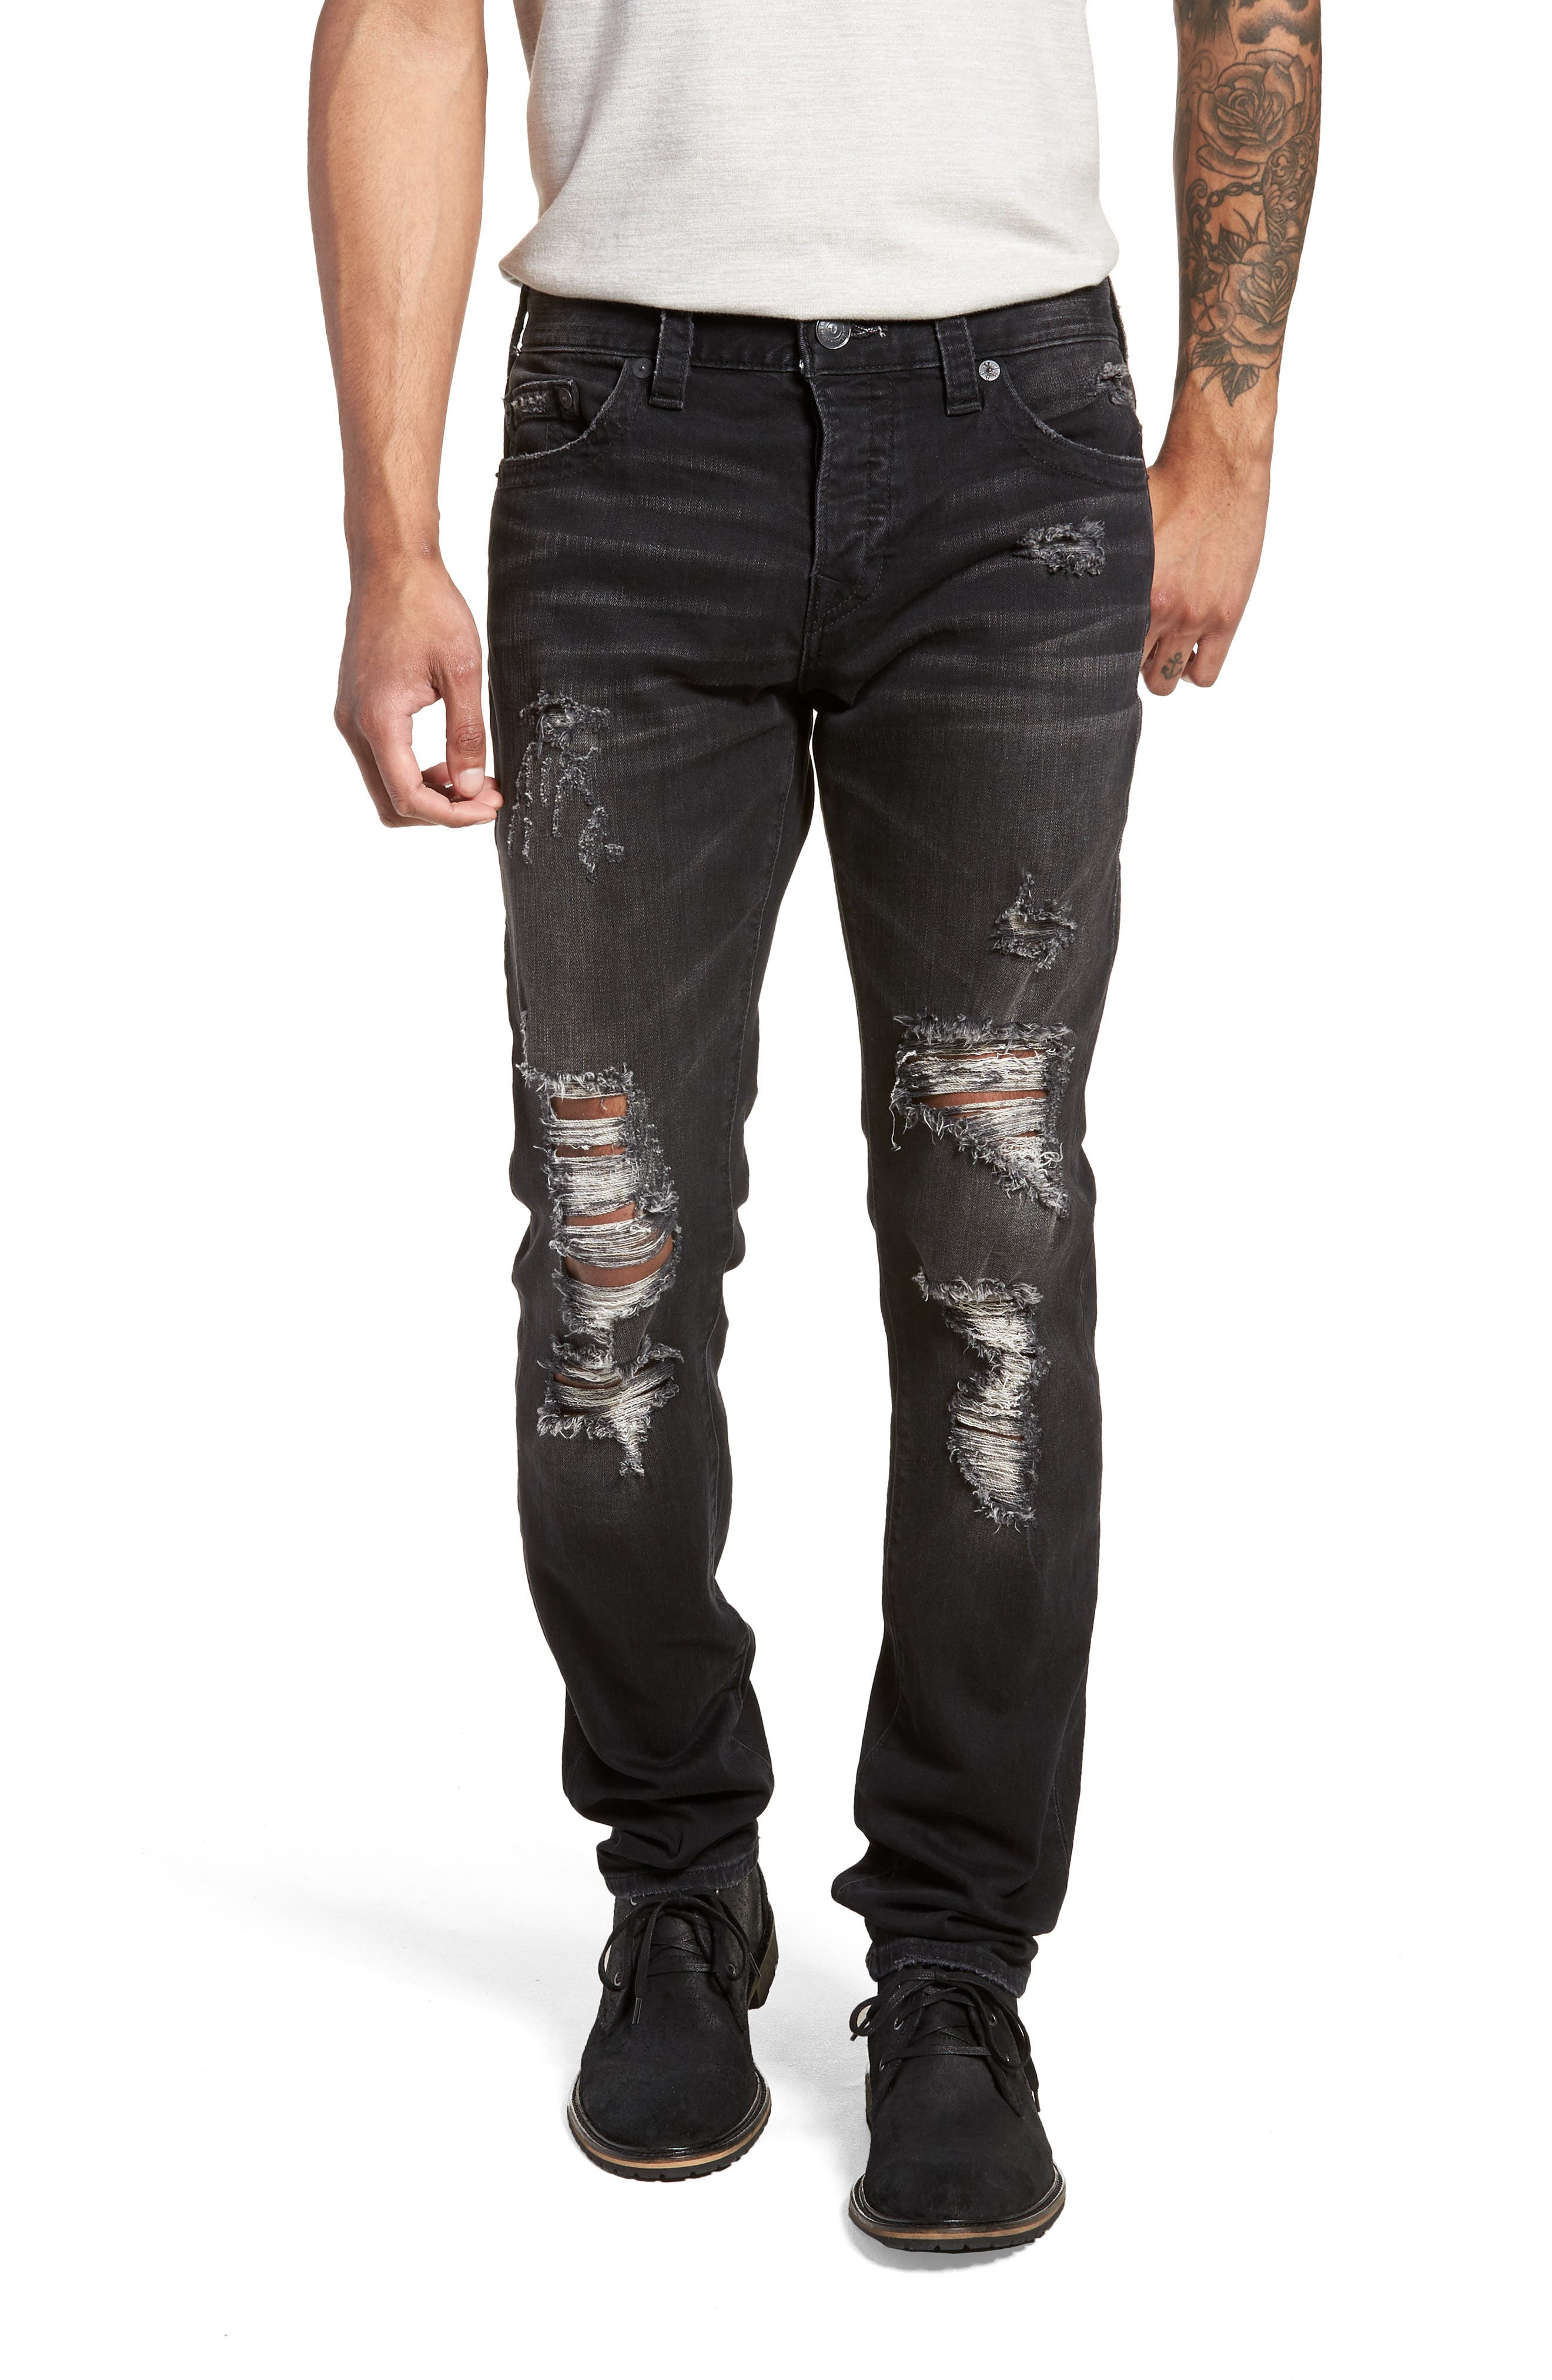 Rocco Skinny Fit Jeans,                             Main thumbnail 1, color,                             EQYD DARK STREET